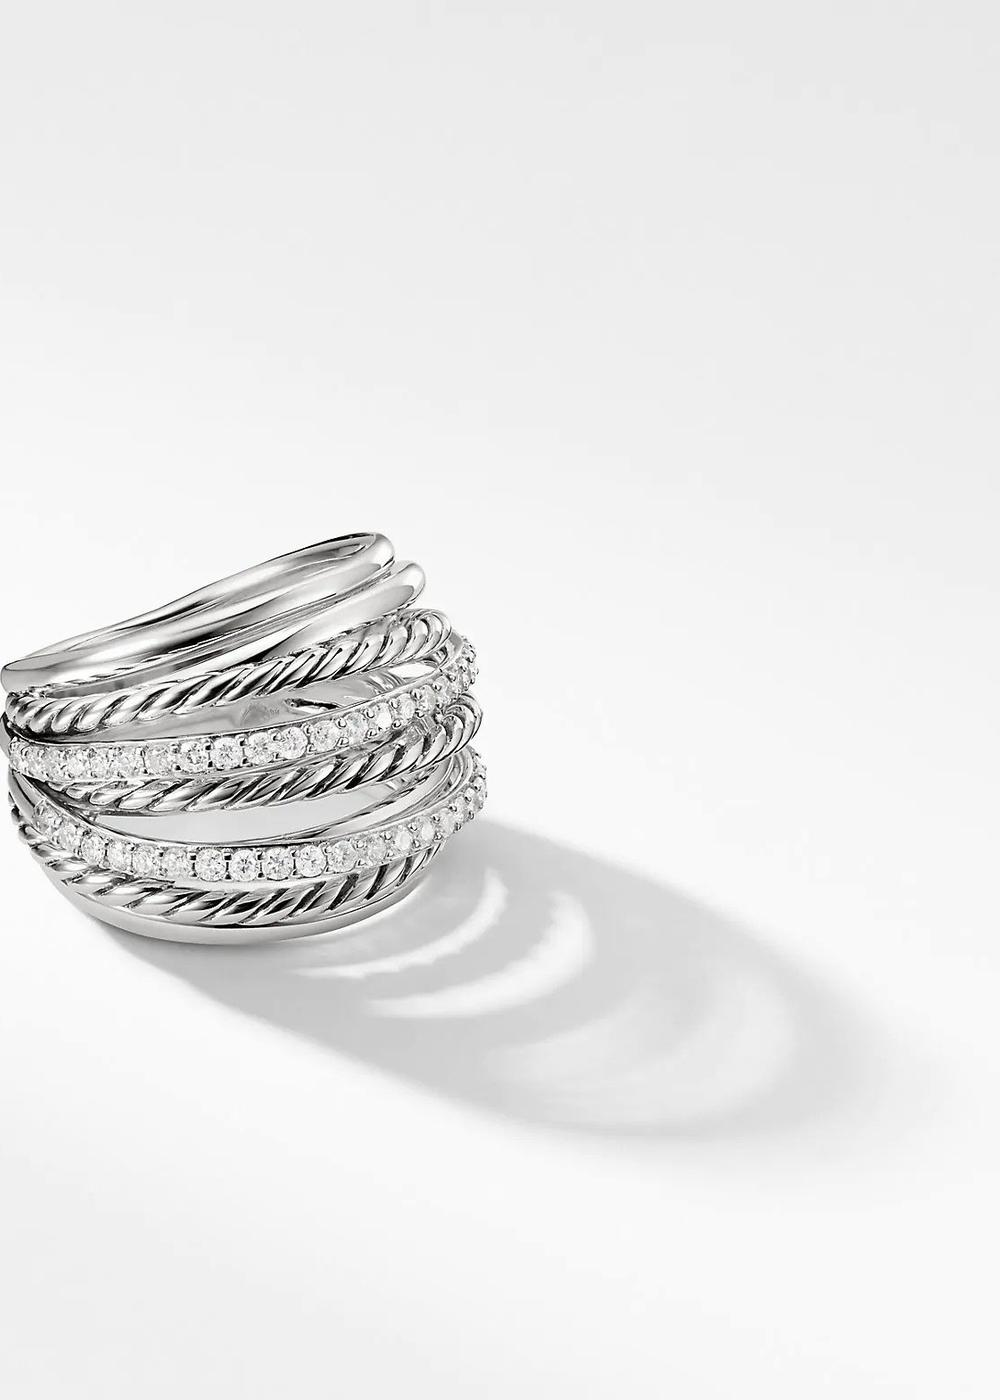 David Yurman product